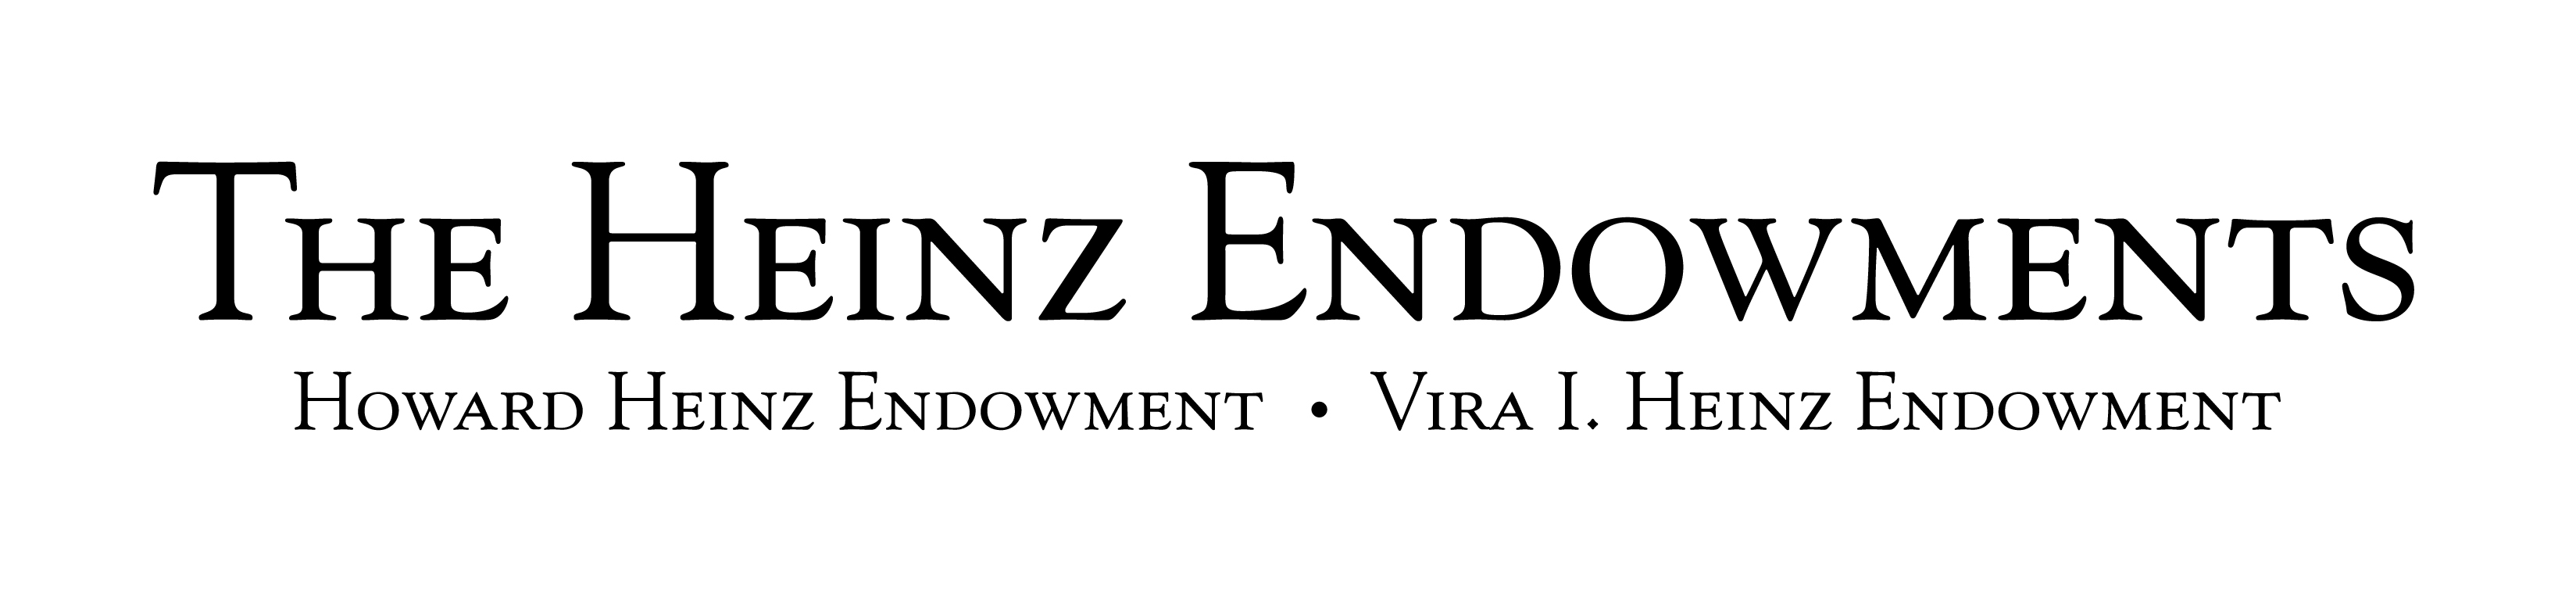 The Heinz Endowments logo